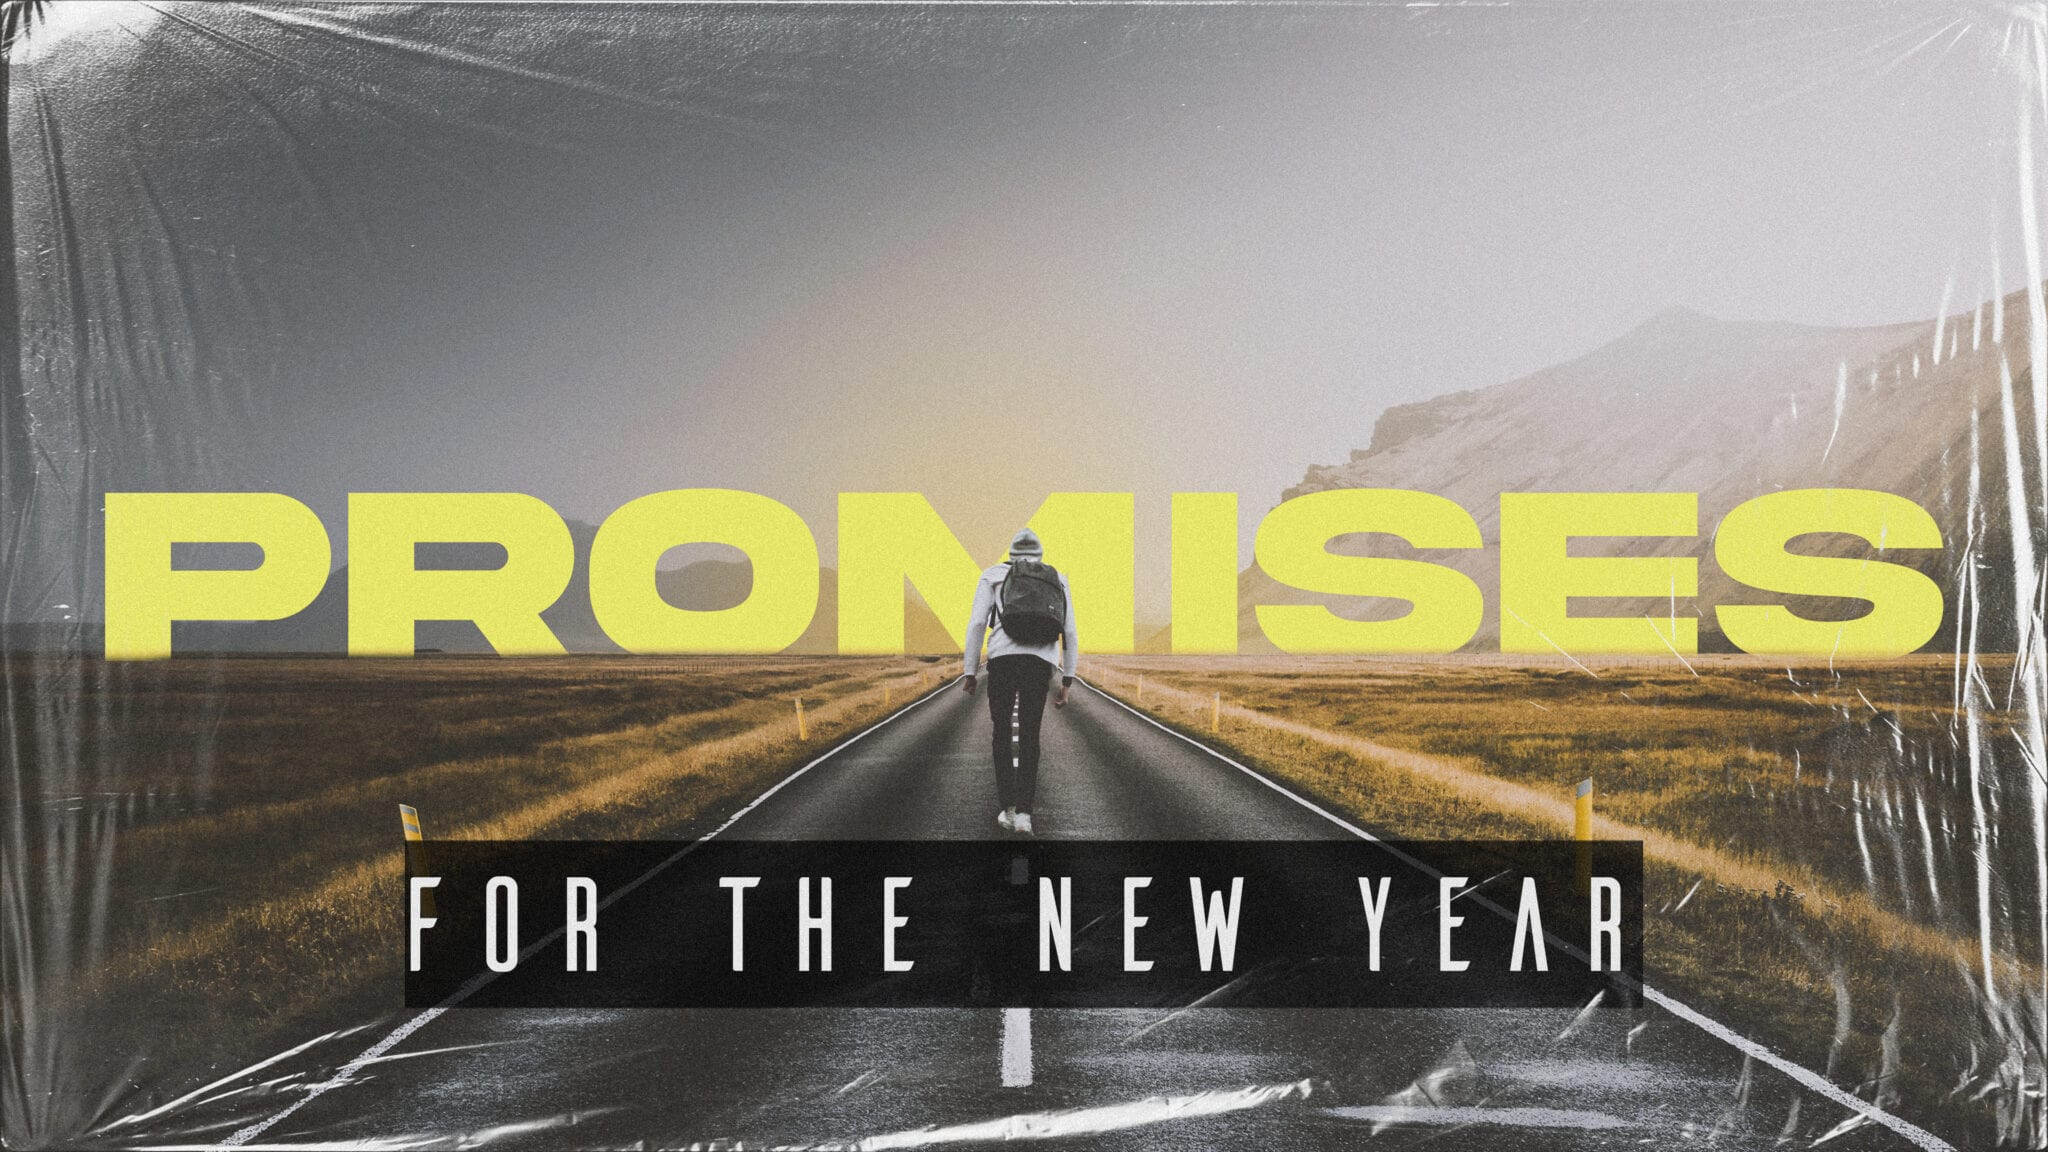 Promises for the New Year